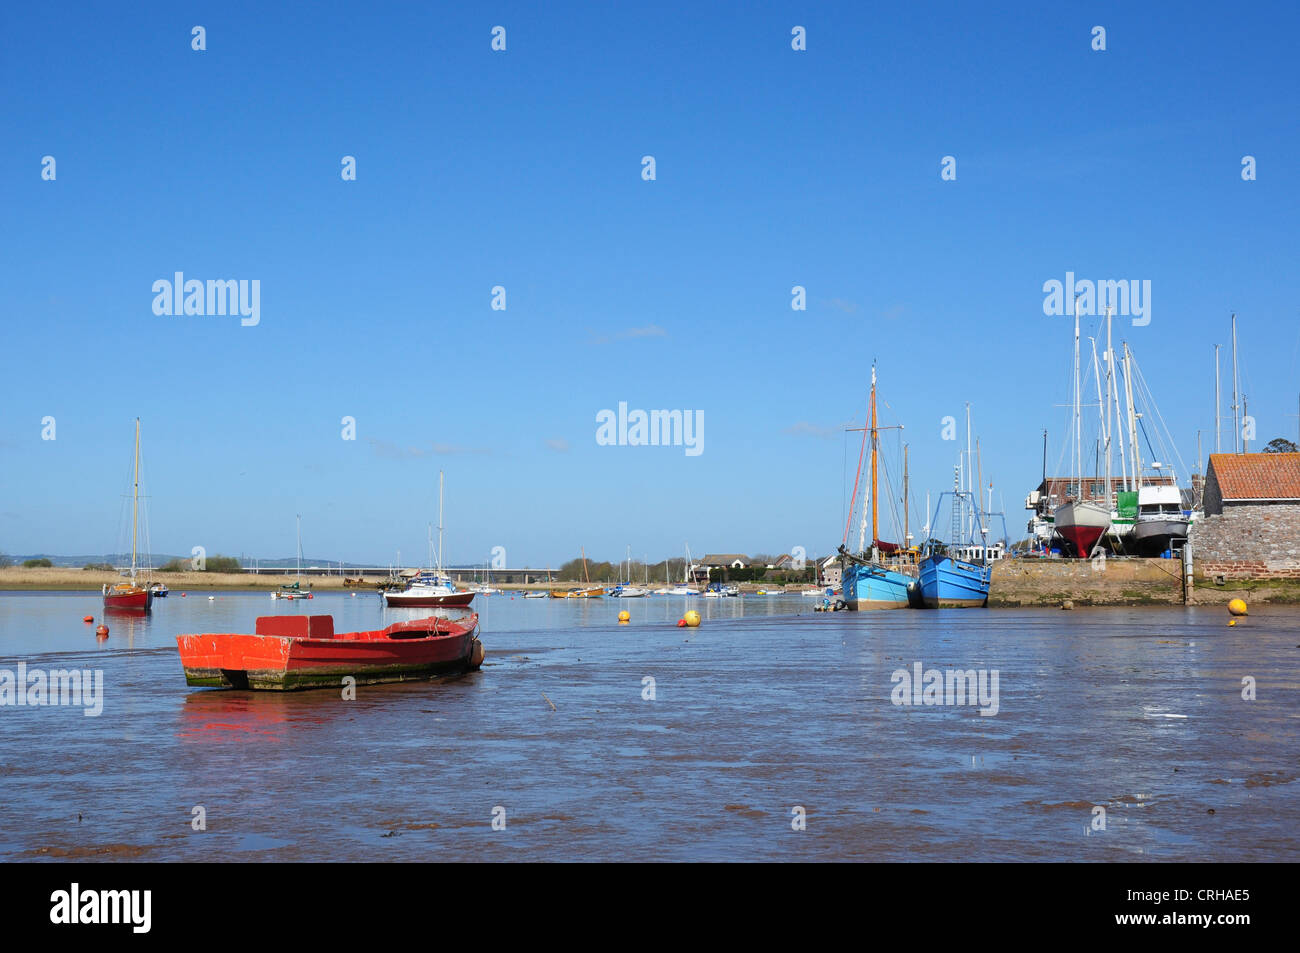 Red and blue hulled boats, moored in the estuary and at the quayside at low tide, Topsham, Devon, England, UK - Stock Image